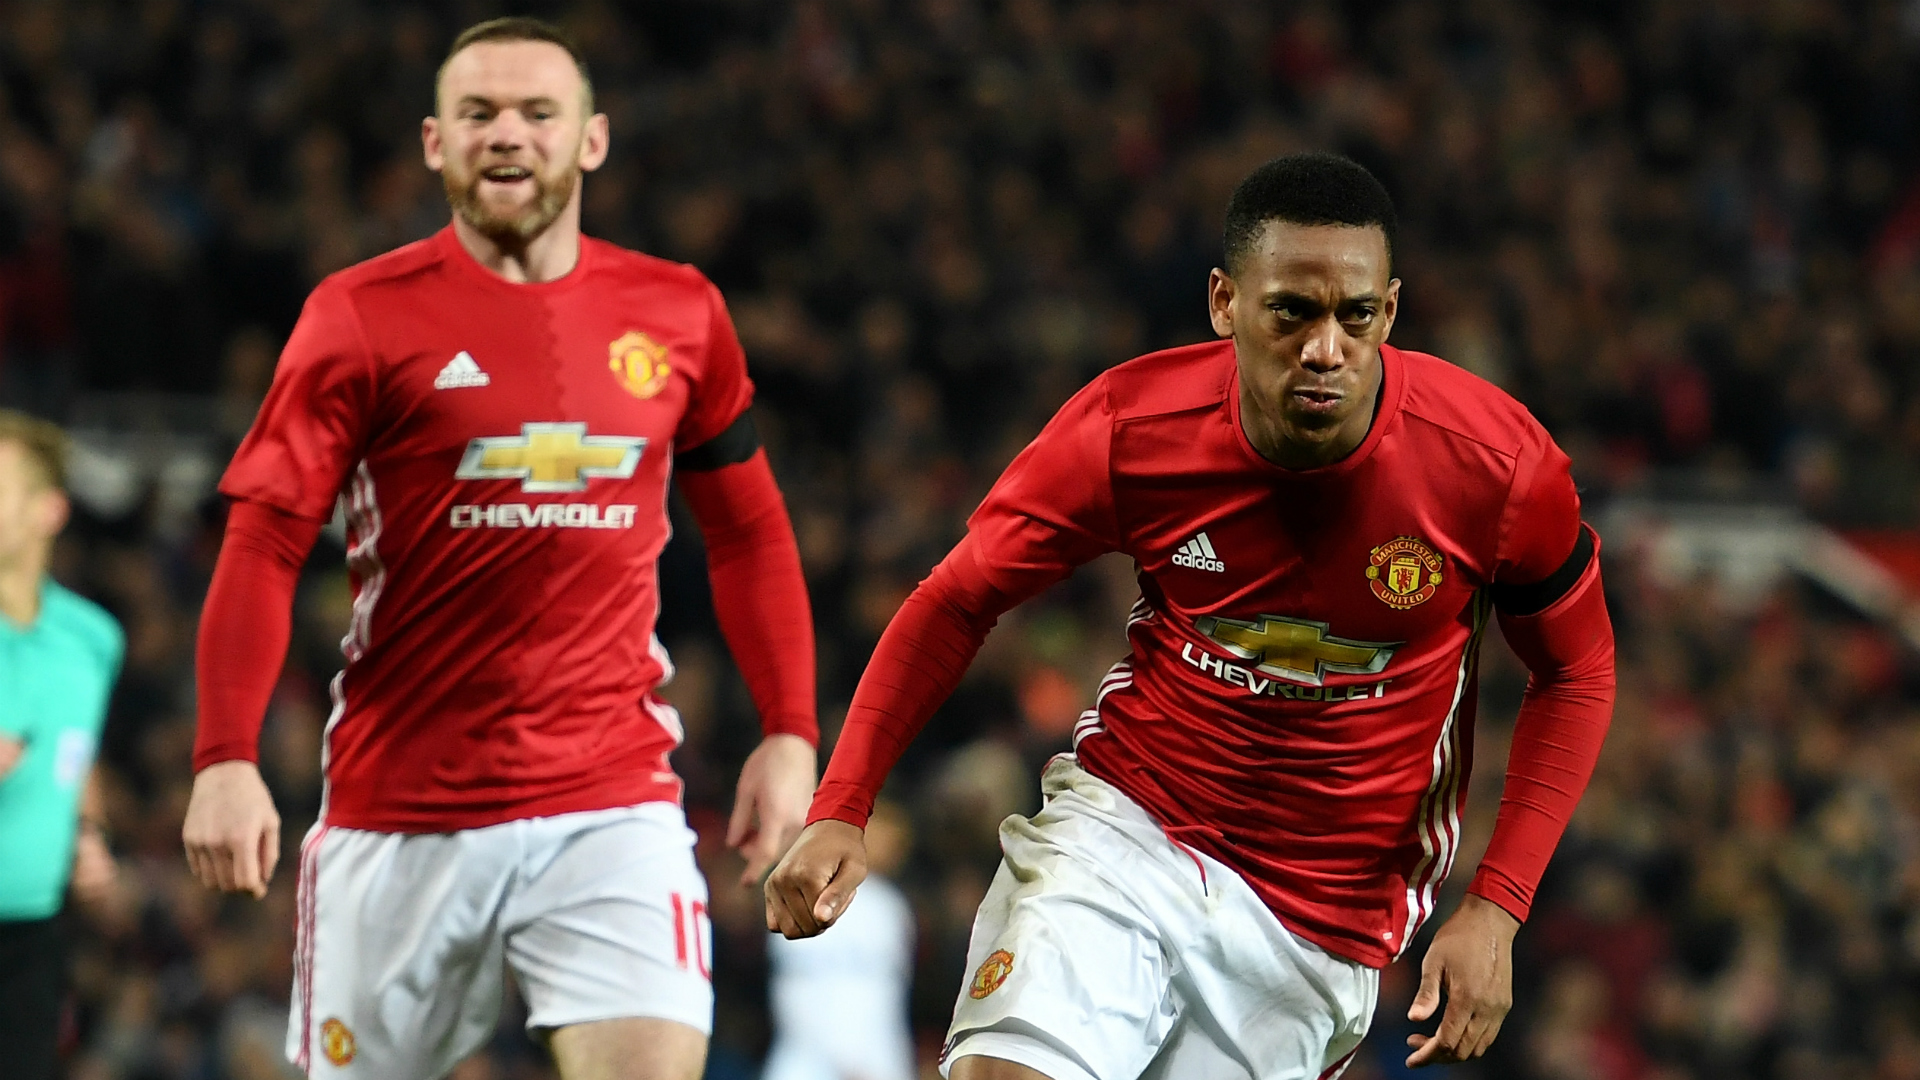 https://i1.wp.com/images.performgroup.com/di/library/GOAL_INTERNATIONAL/88/5f/anthony-martial-manchester-united-west-ham_1ooynvcn2ldx01ewhh3dm5ohbo.jpg